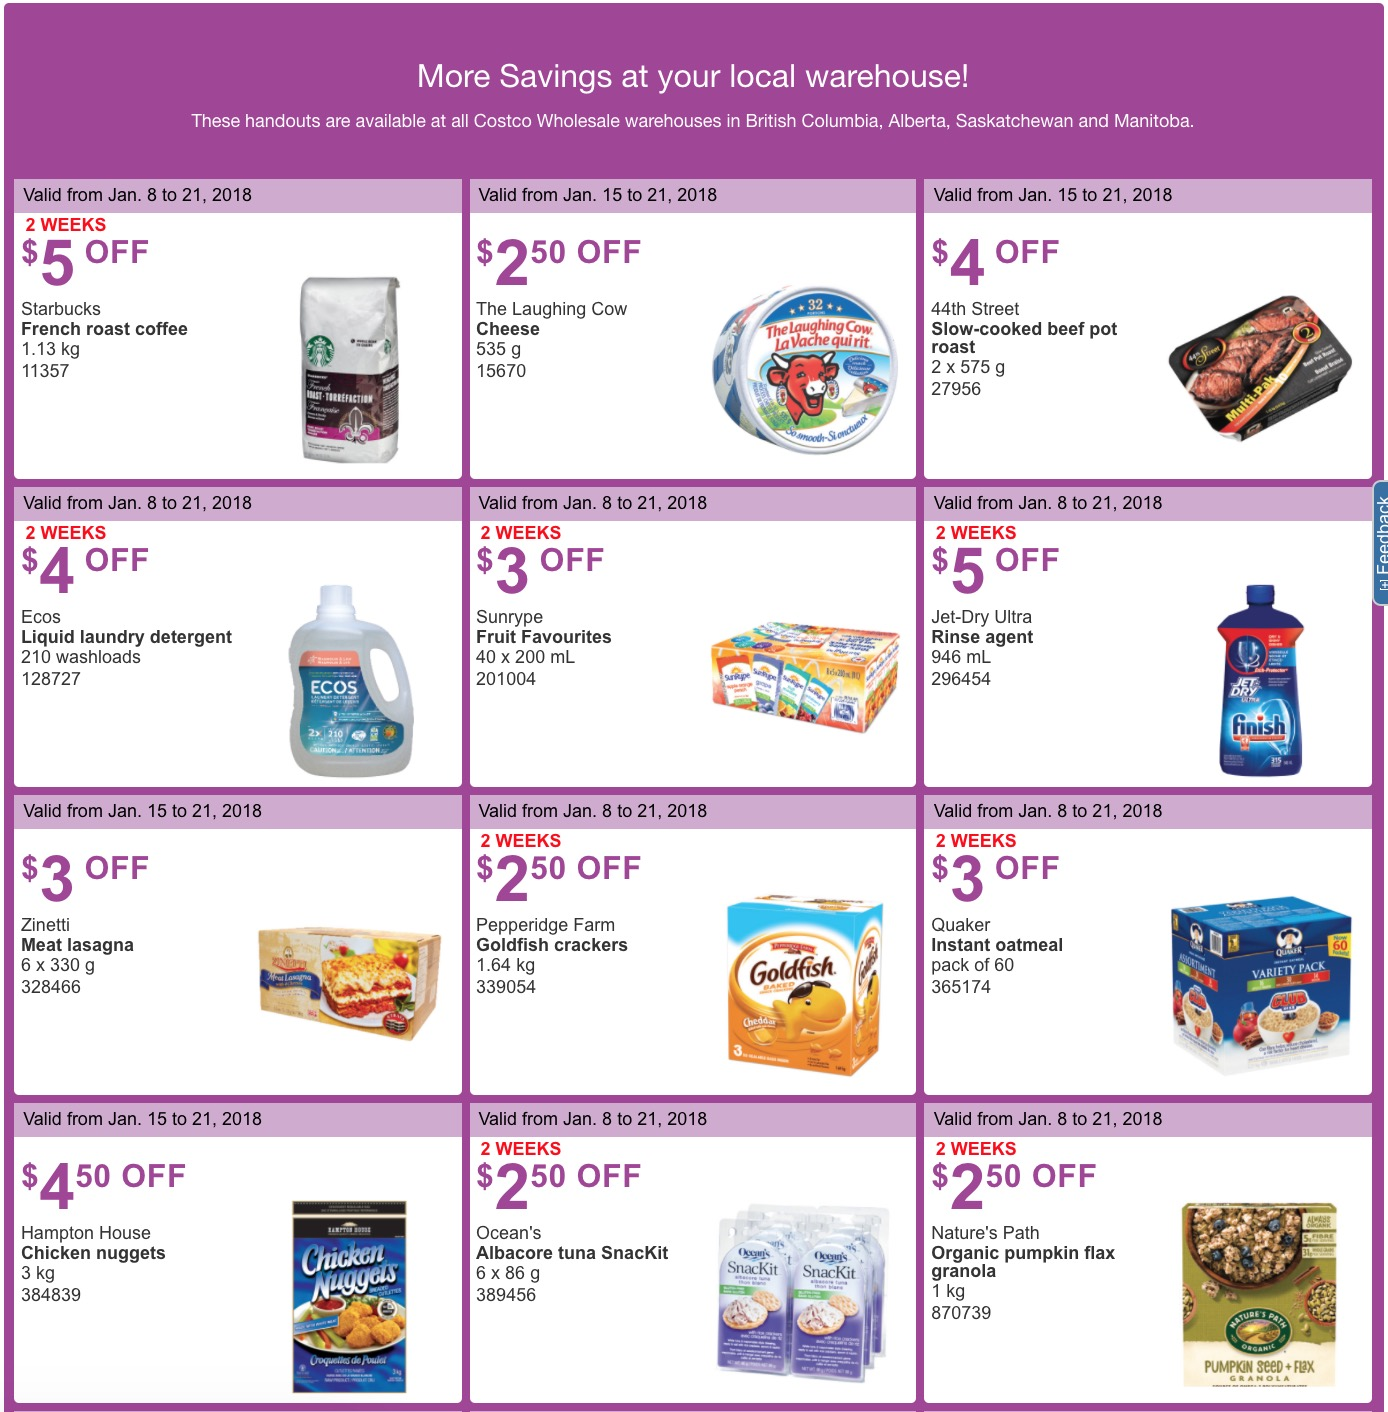 Costco.ca coupon code 2018